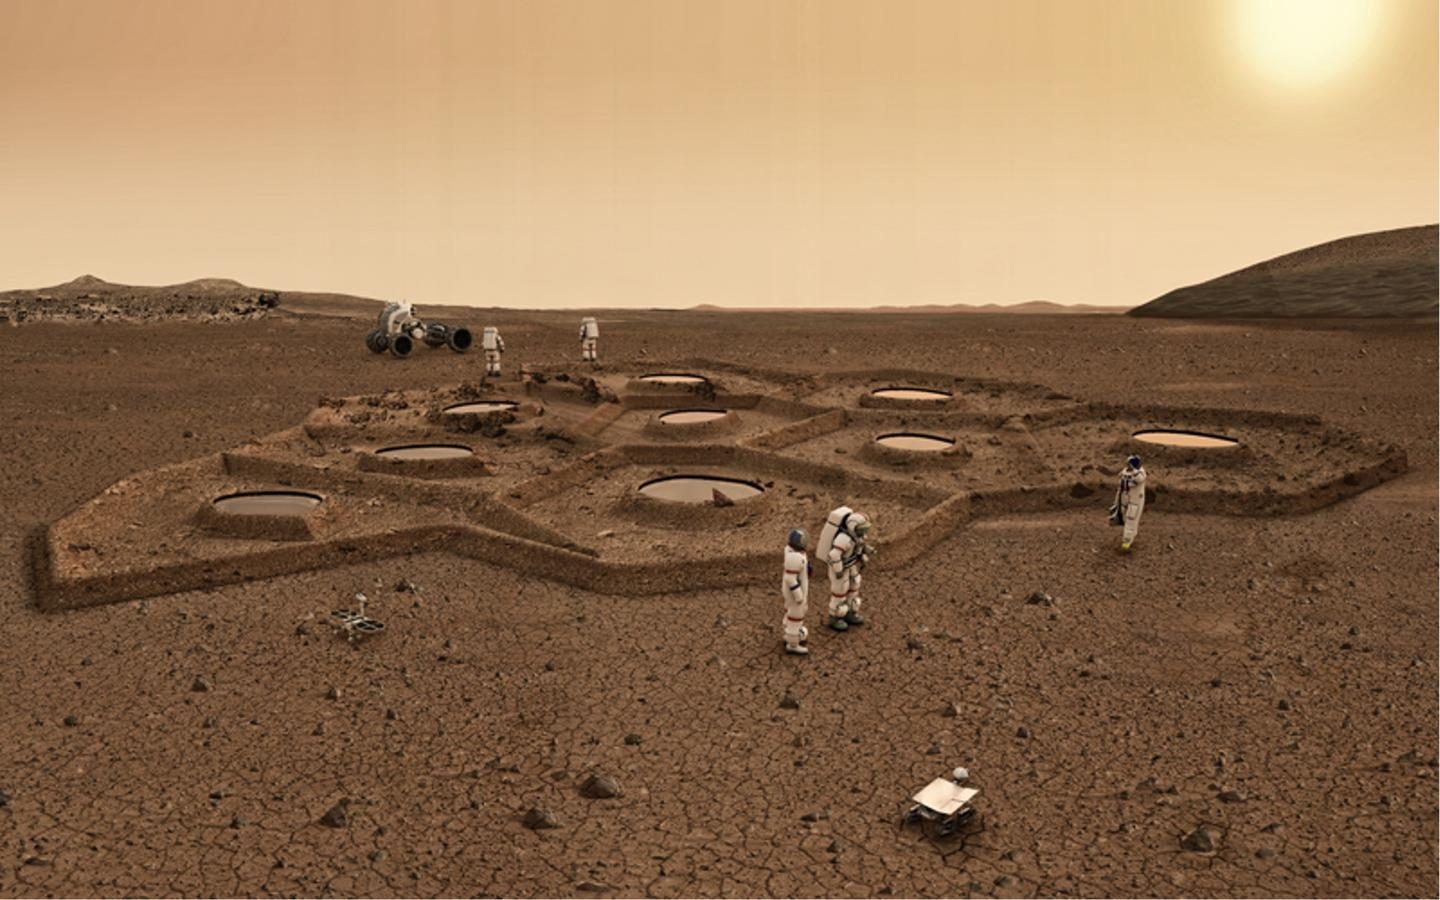 The Martian colony would be underground